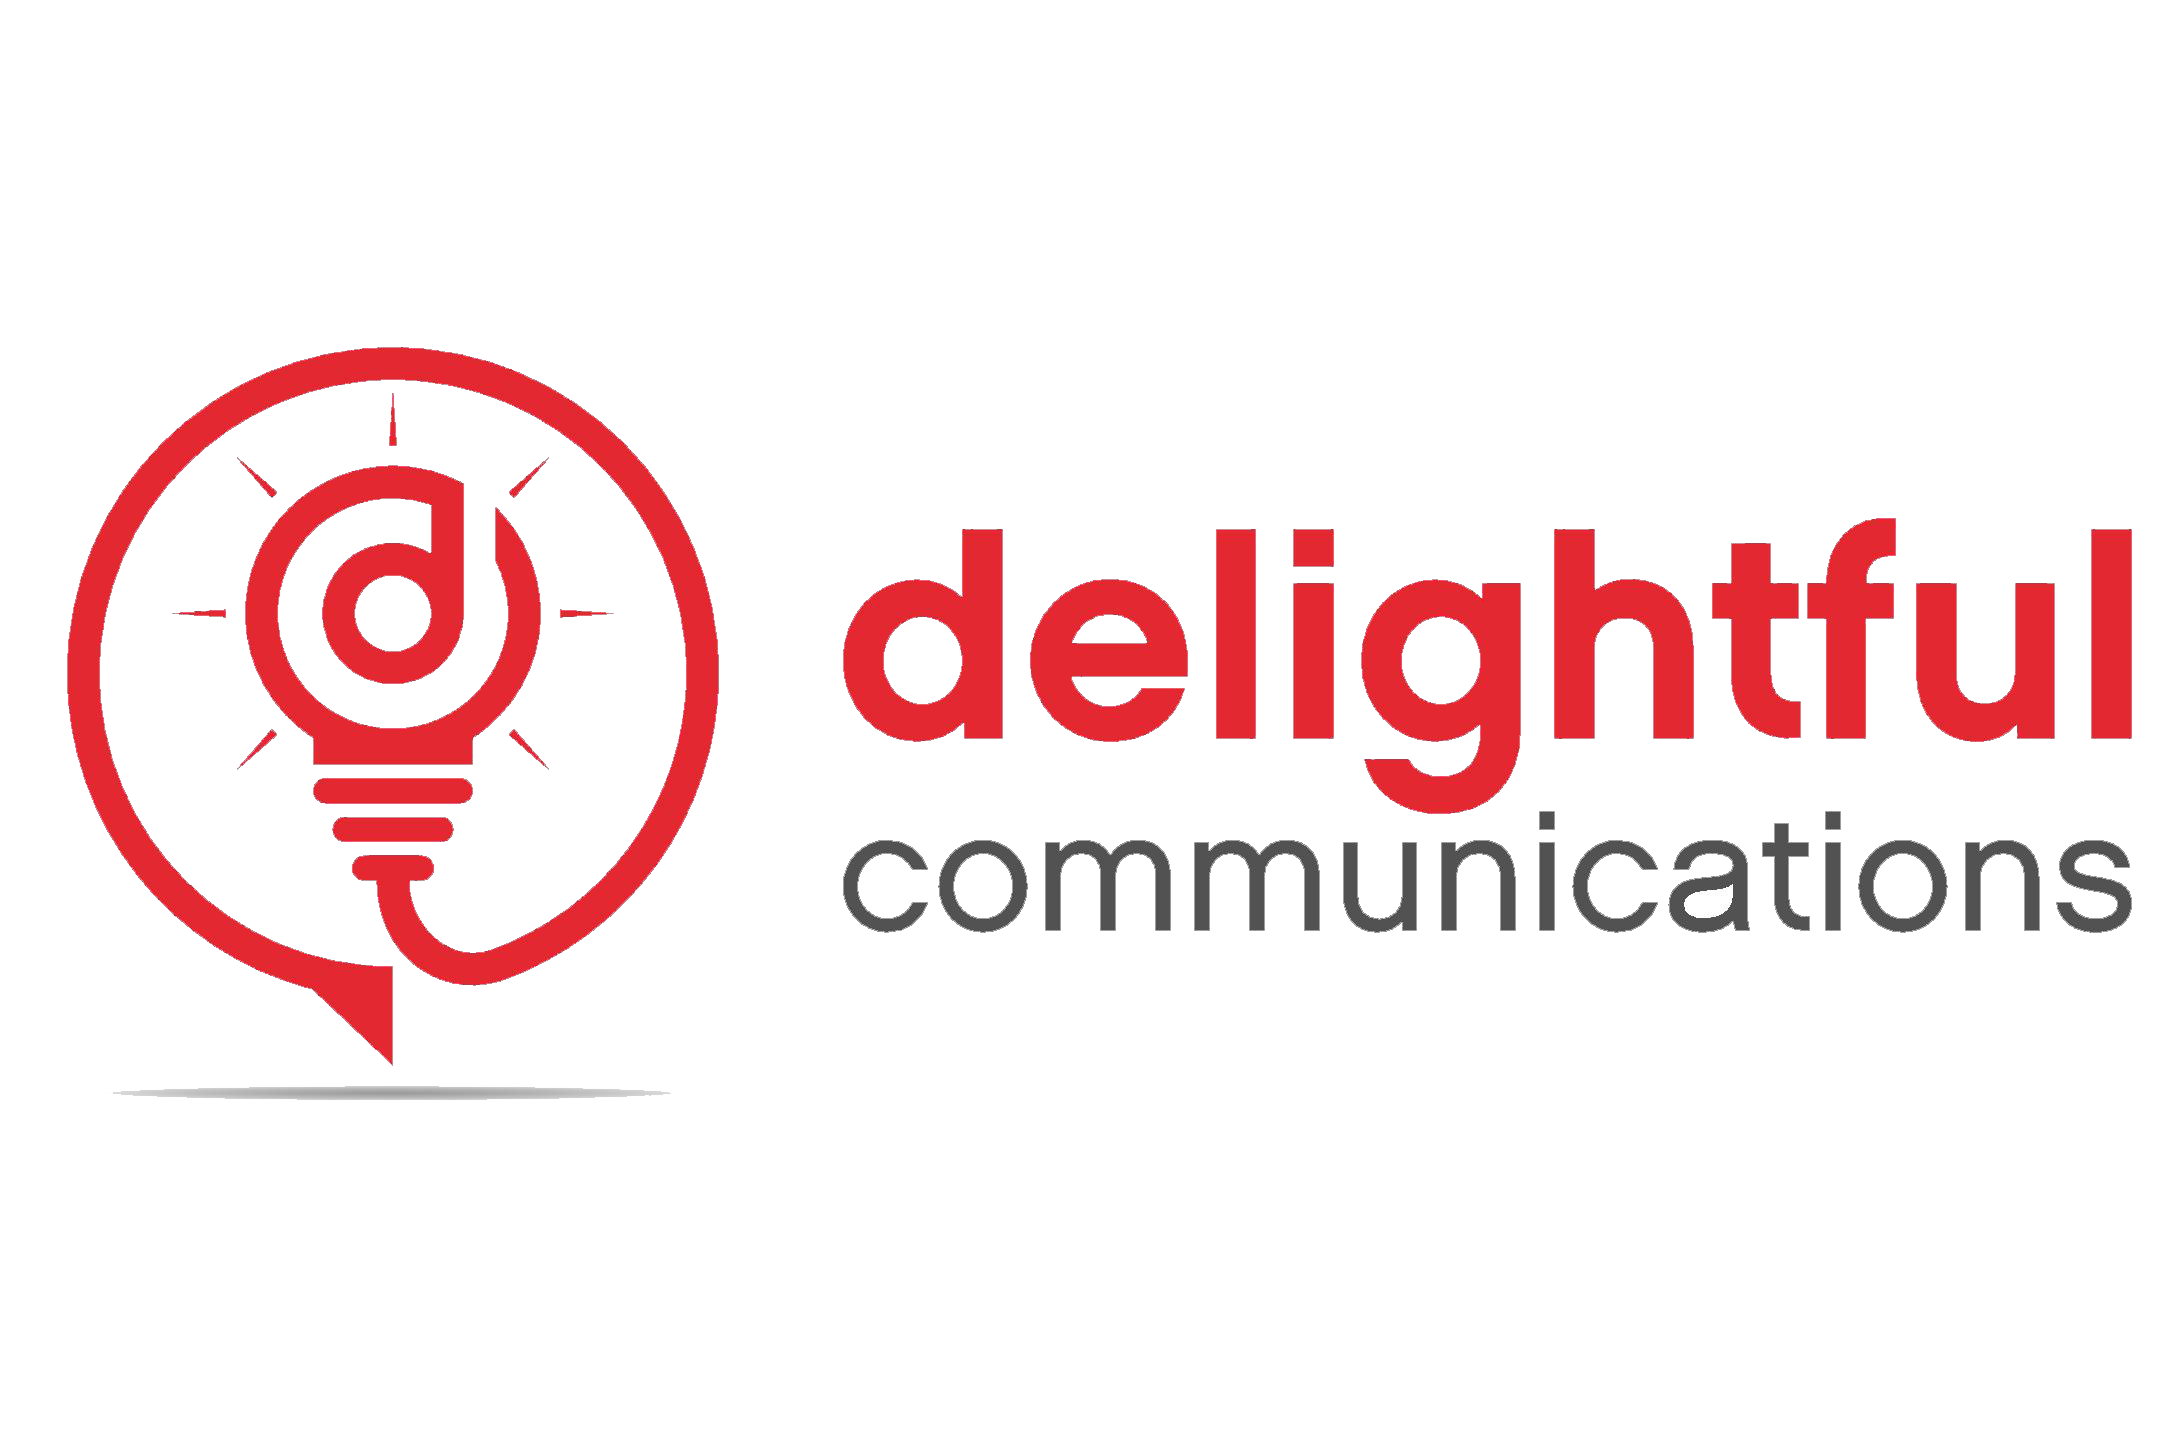 Delightful Communications